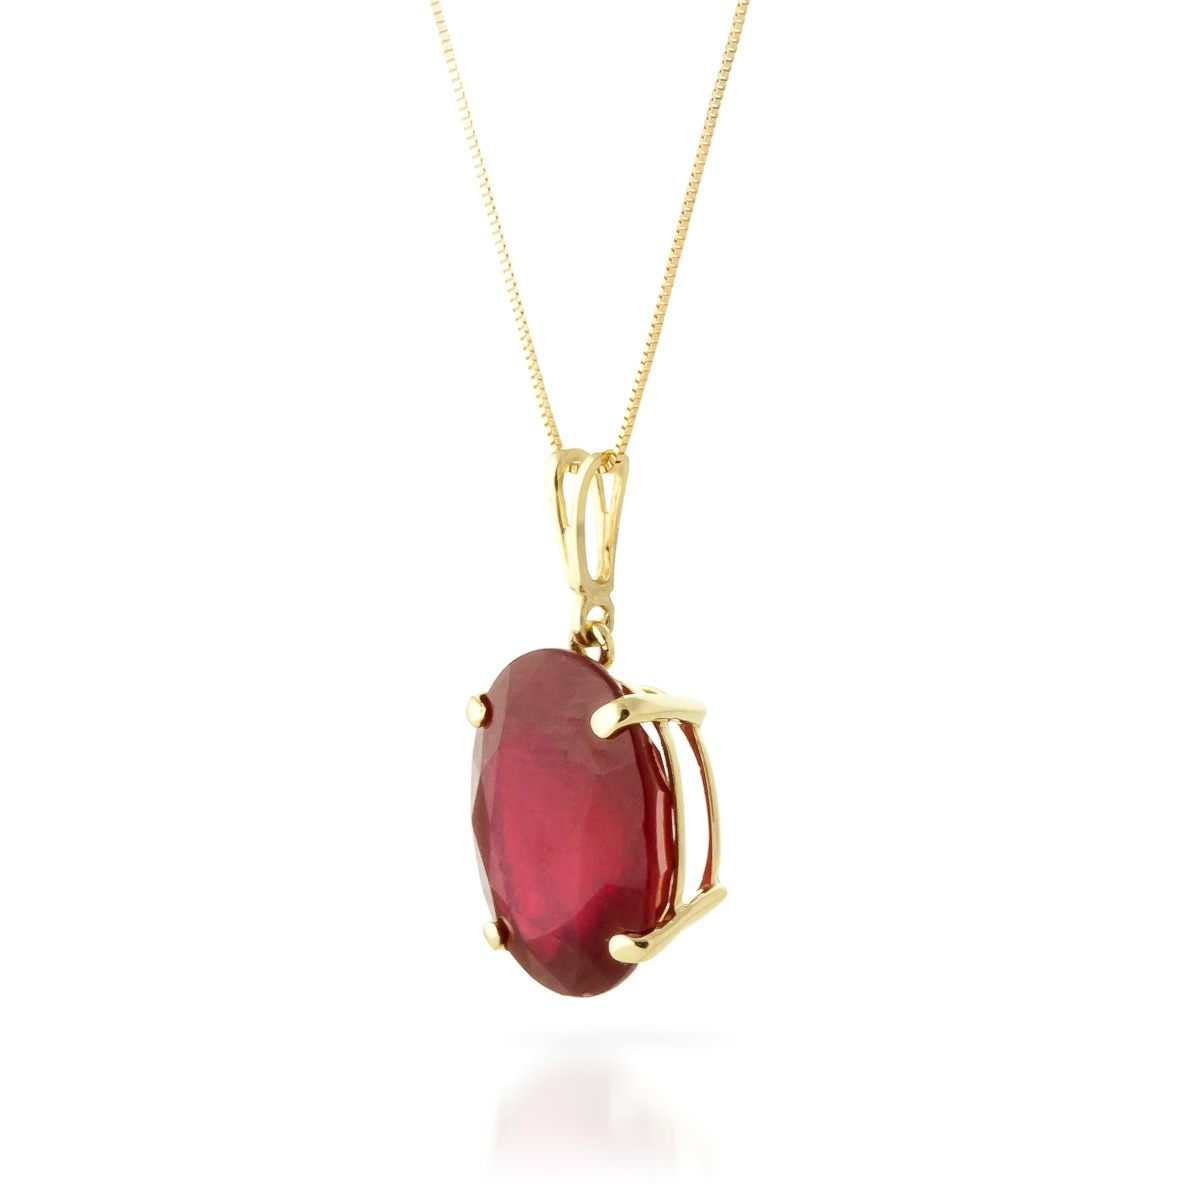 Oval Cut Ruby Pendant Necklace 7.7ct in 14K Gold